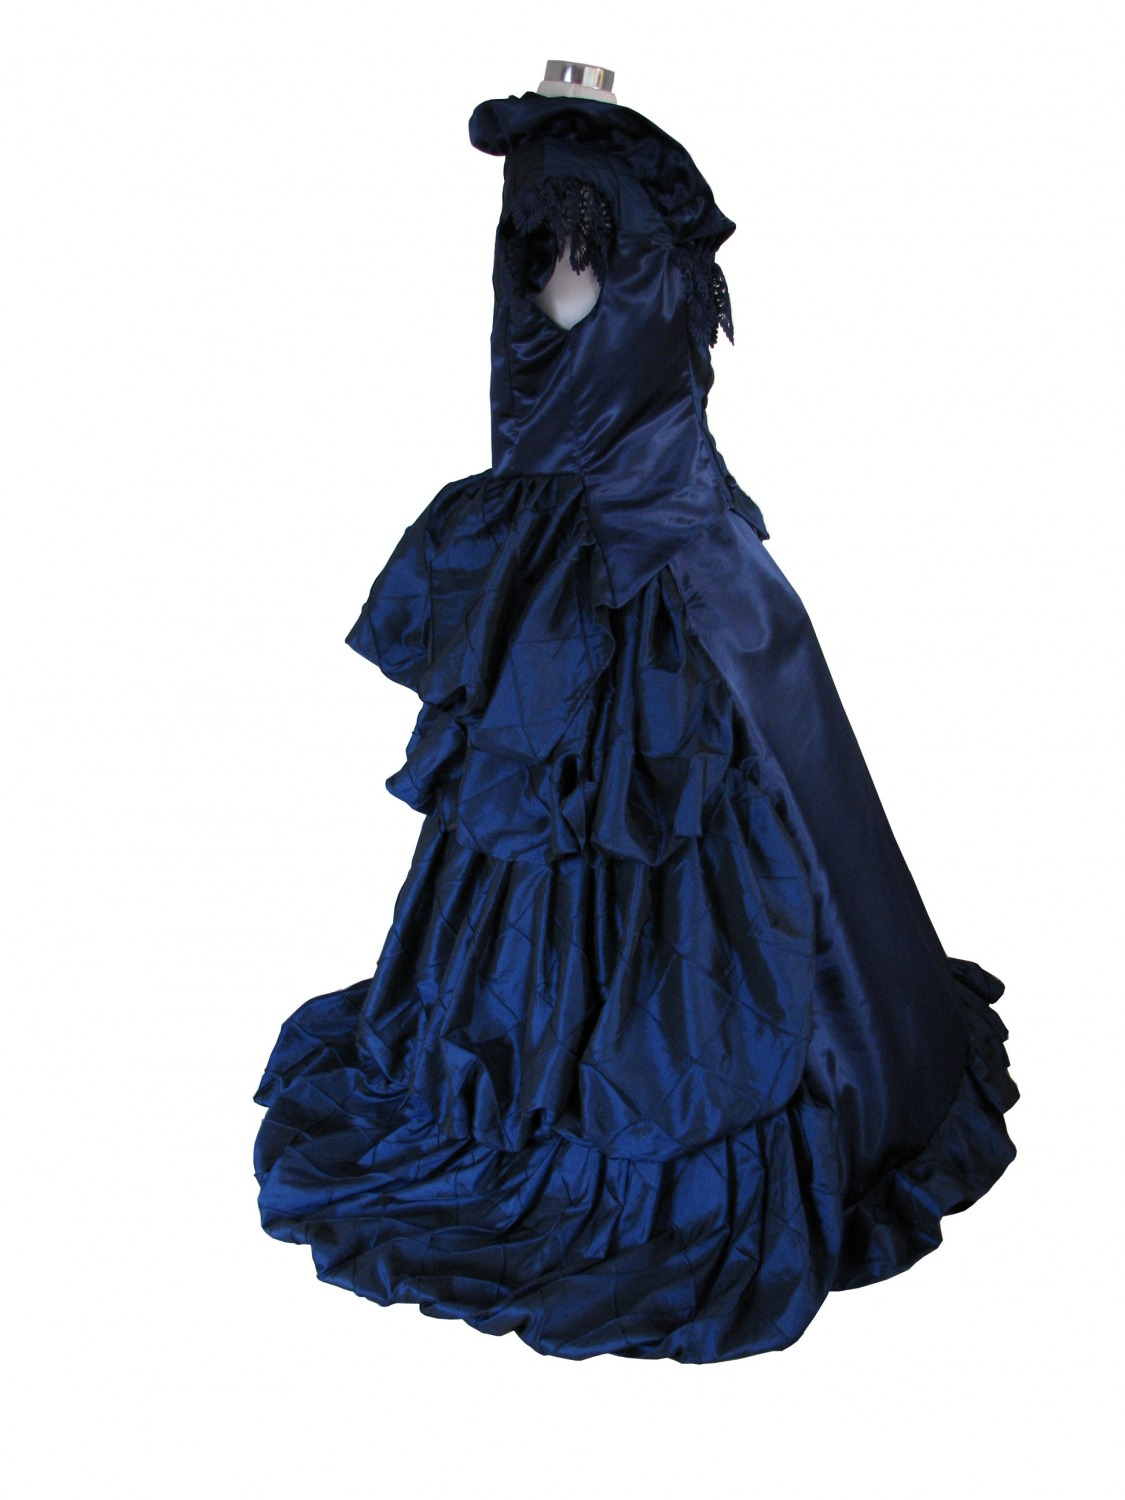 Ladies Deluxe Victorian Evening Ball Gown Size 12 - 14 - Complete ...